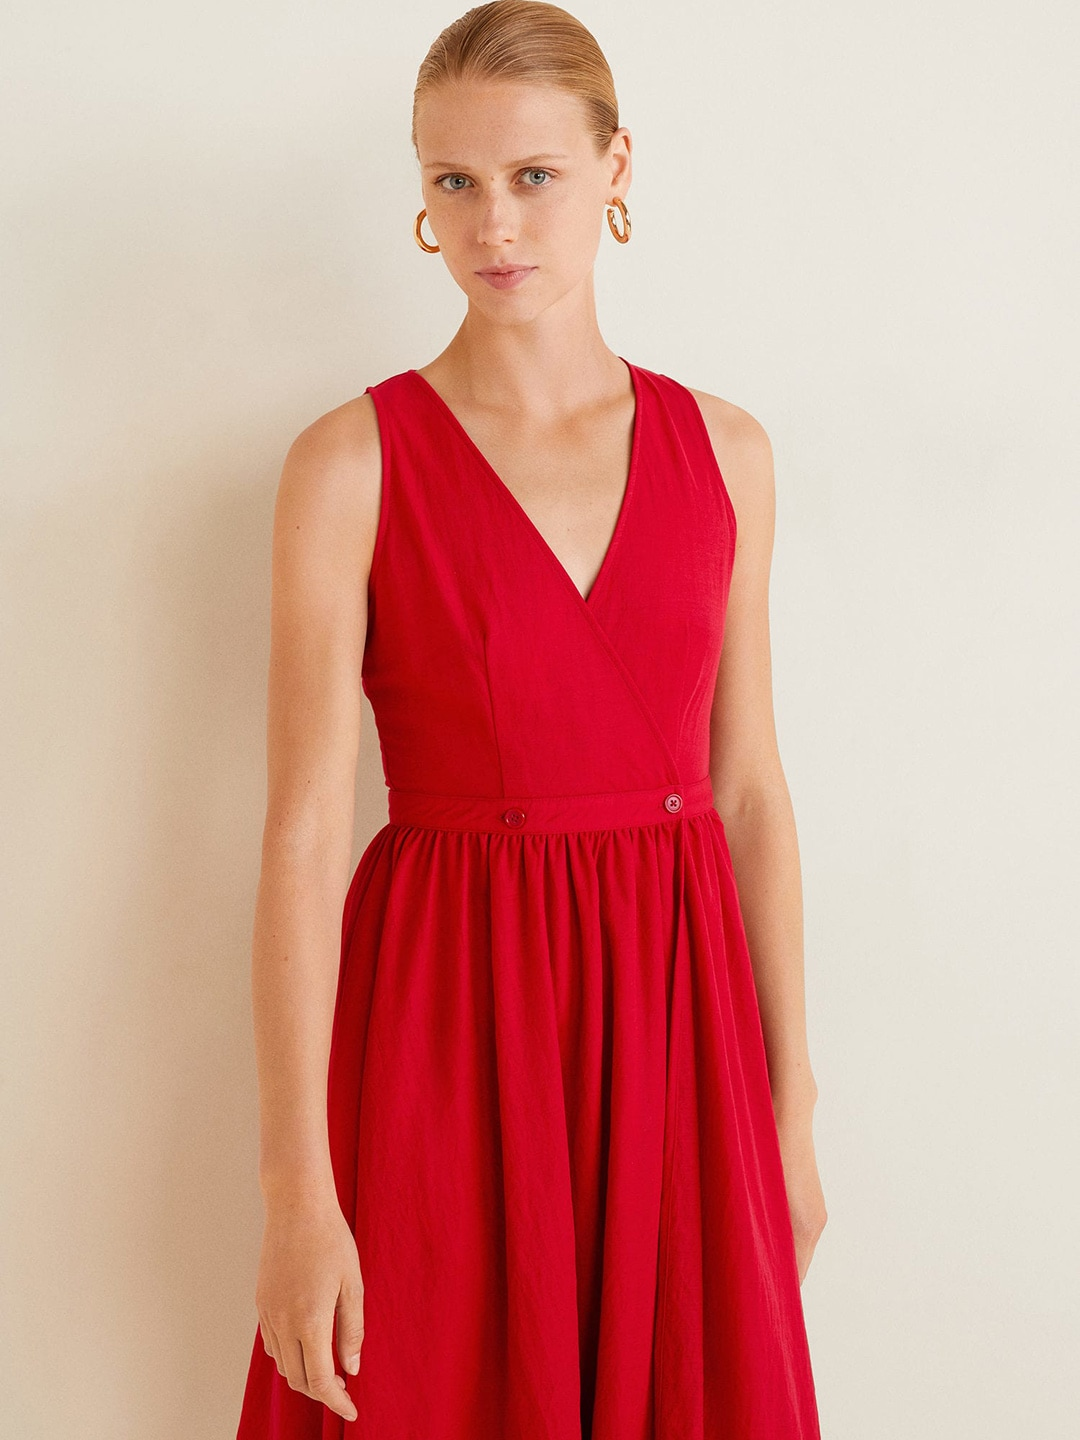 5a88a806a Mango Red Dresses - Buy Mango Red Dresses online in India